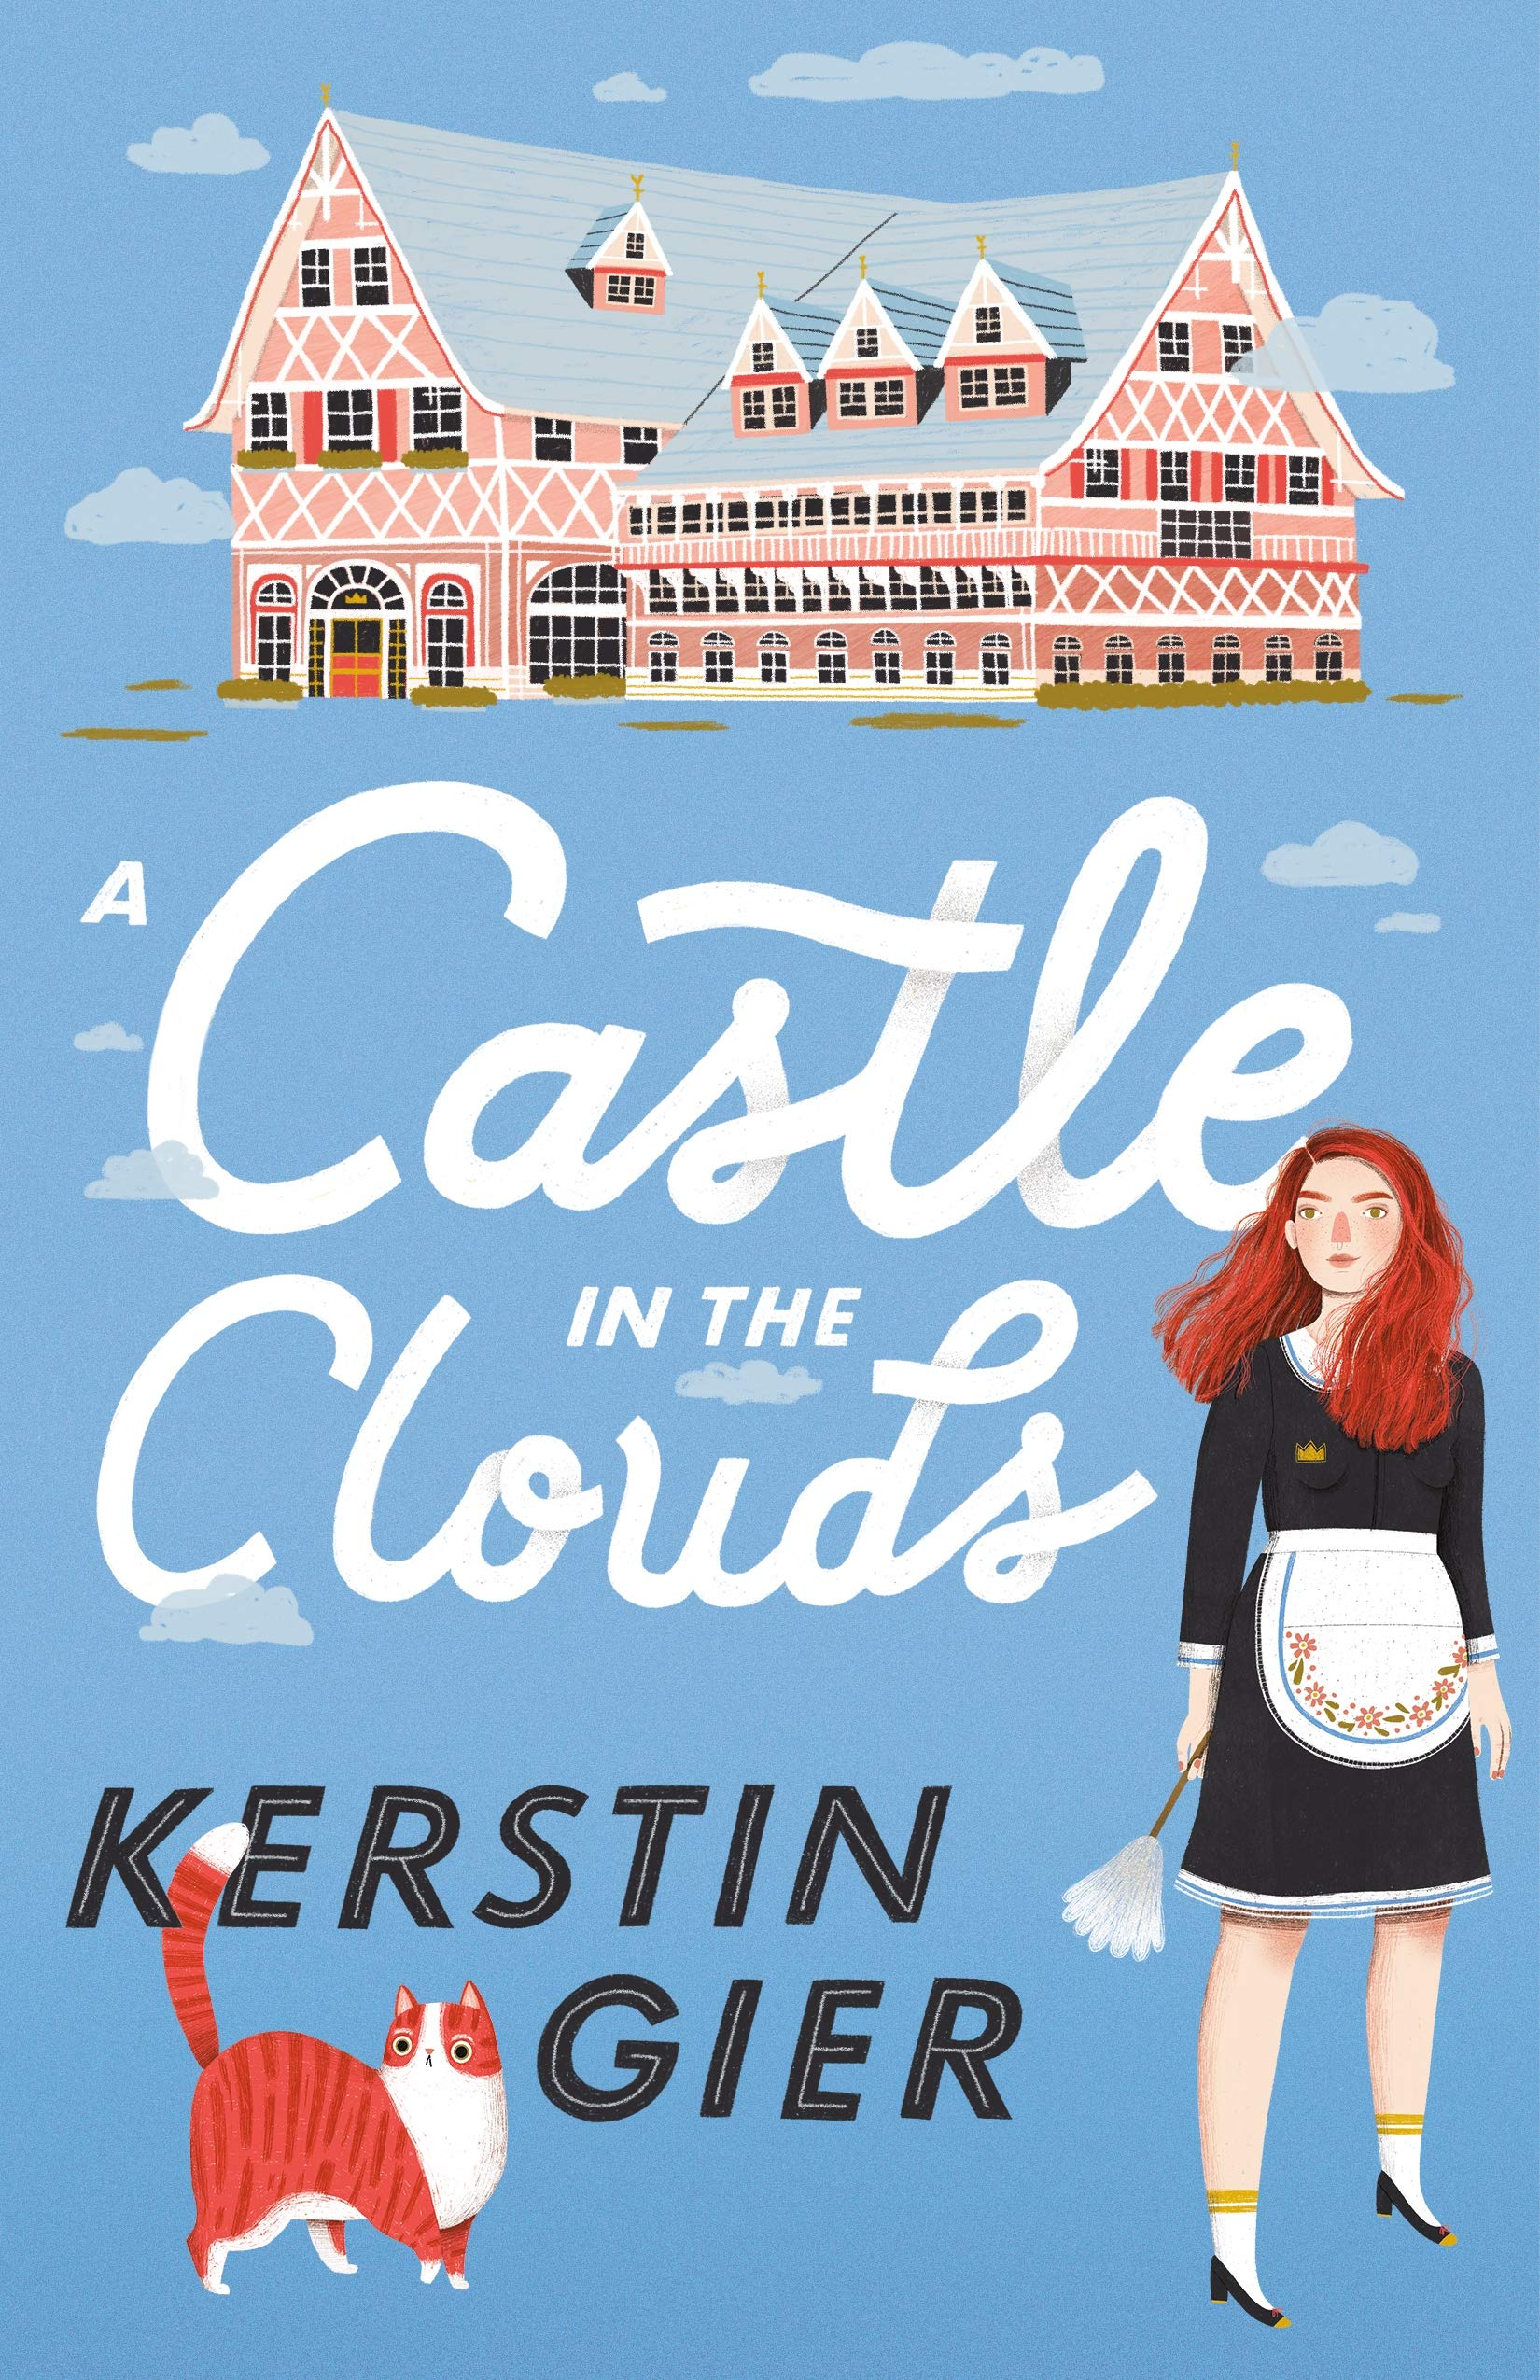 Amazon.com: A Castle in the Clouds (9781250300195): Gier, Kerstin ...